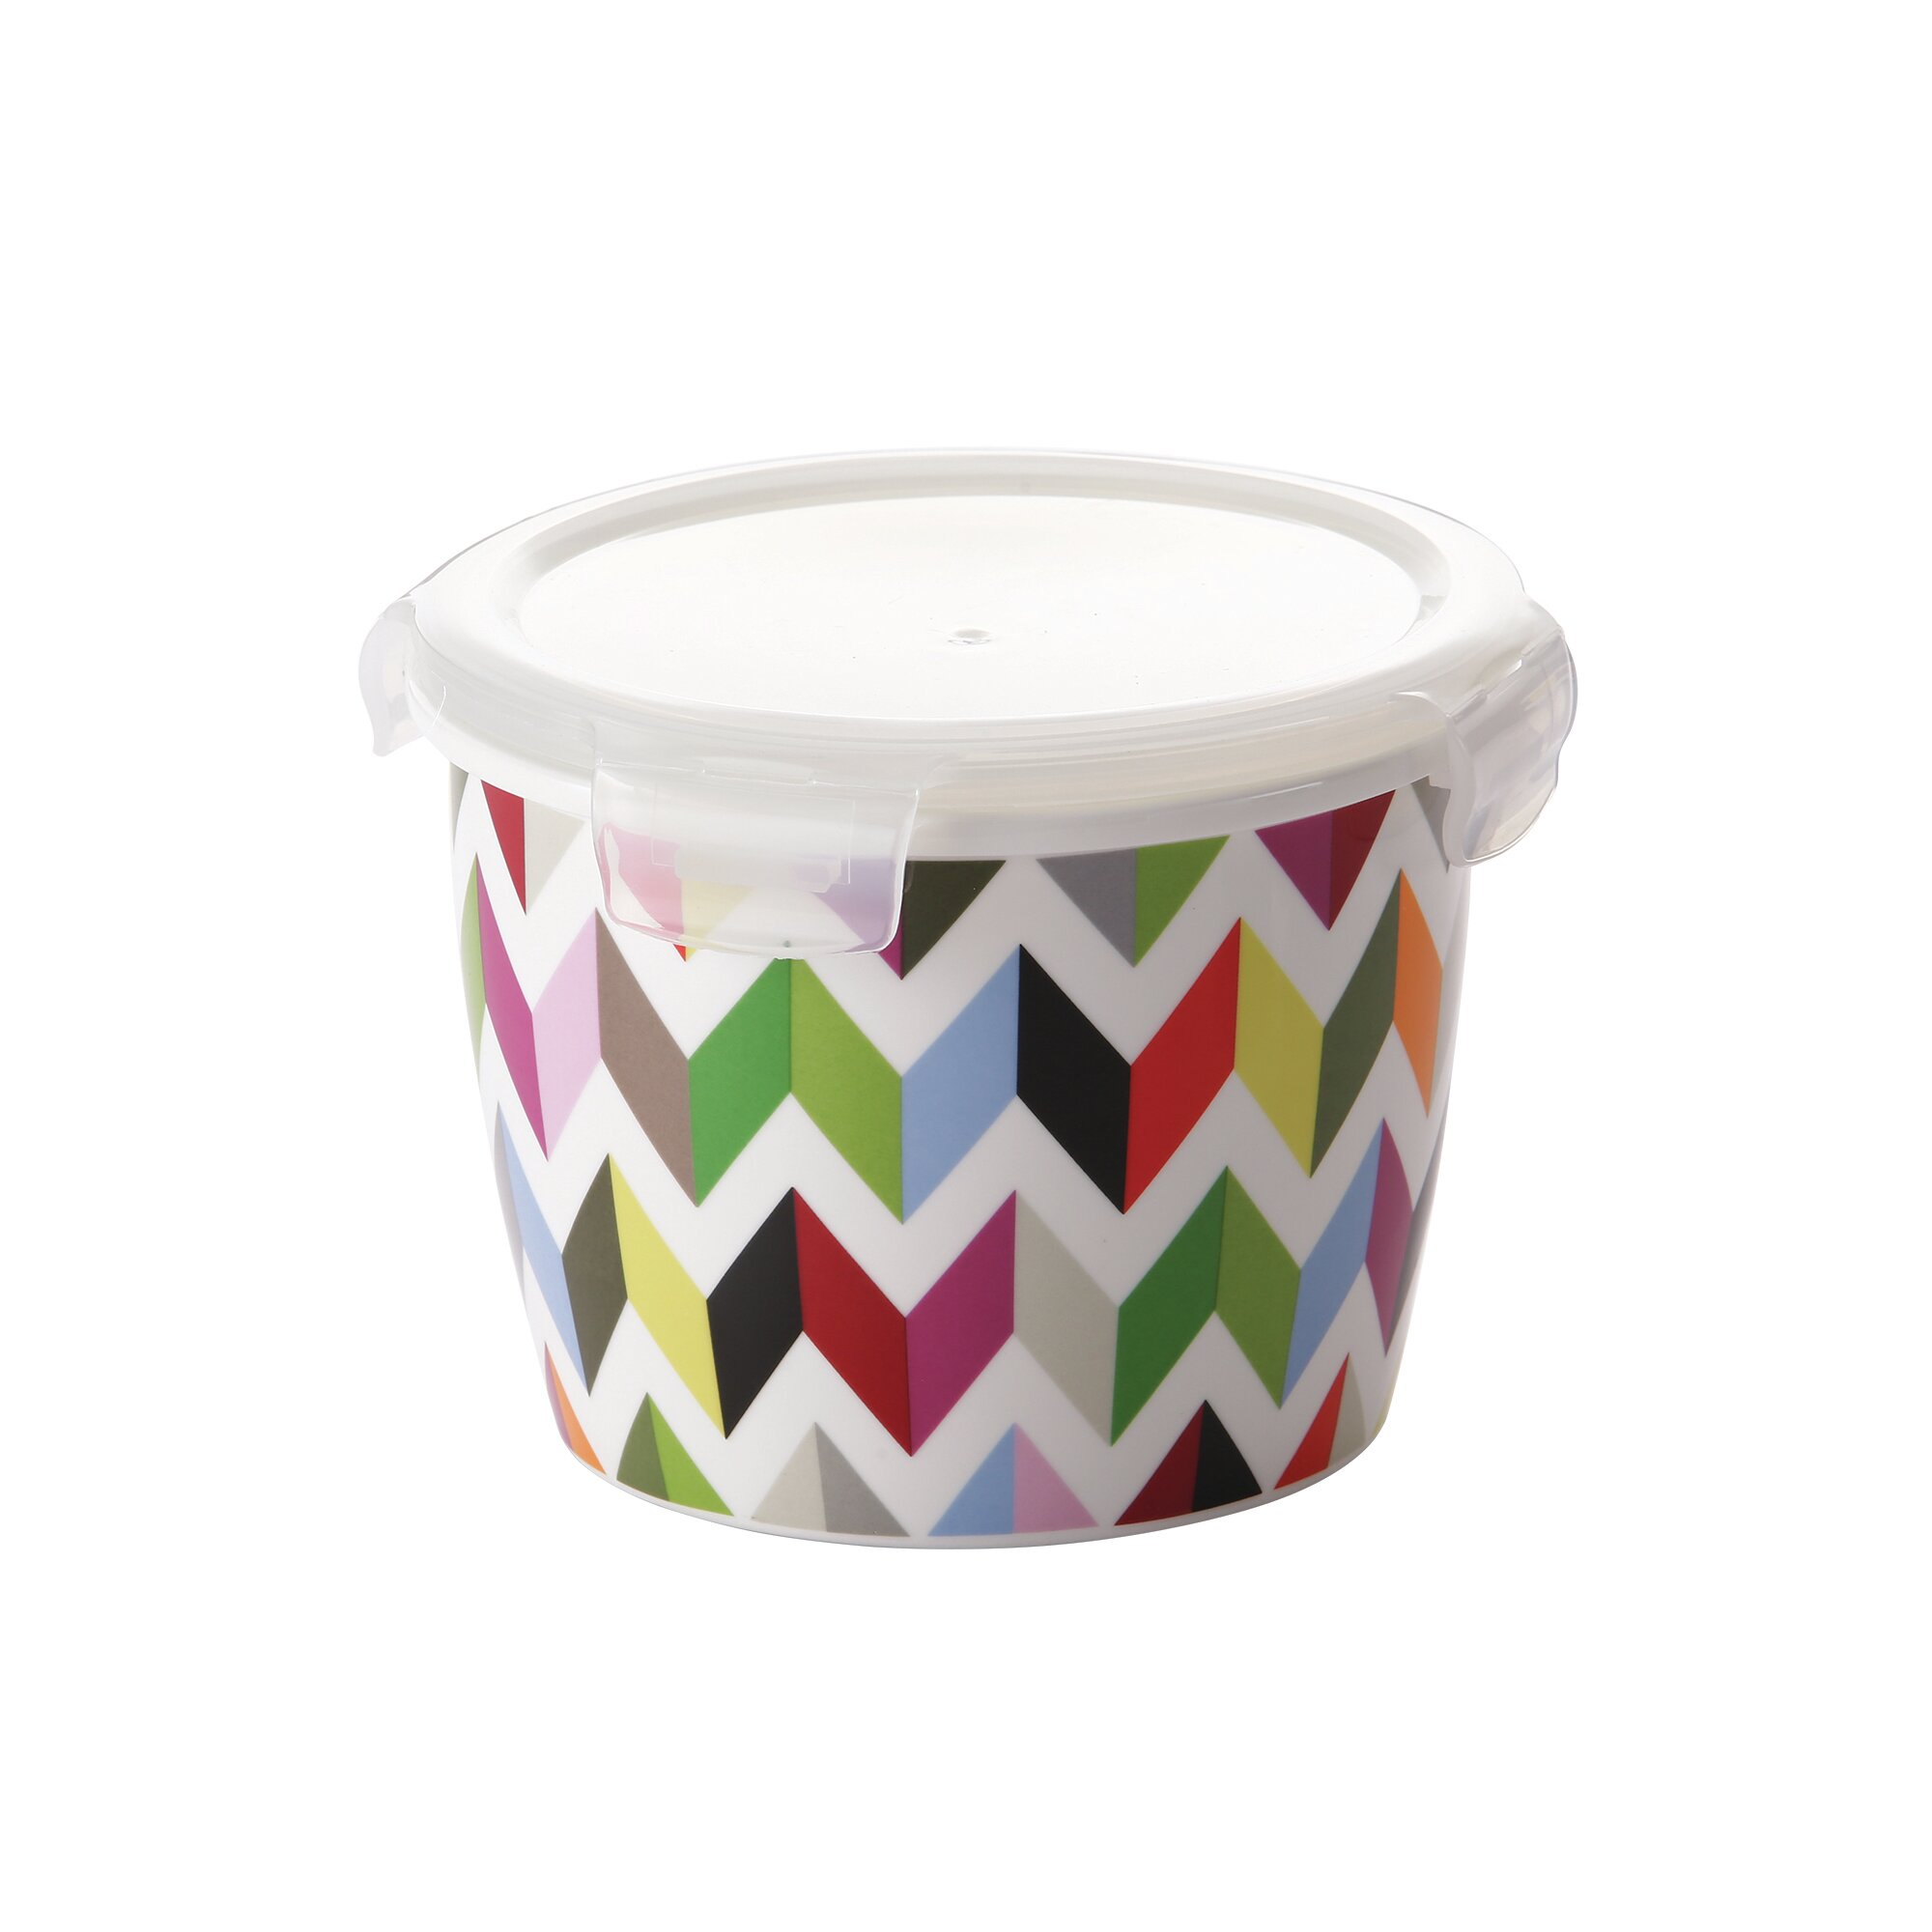 Oven Safe Porcelain Food Storage Containers You Ll Love In 2021 Wayfair